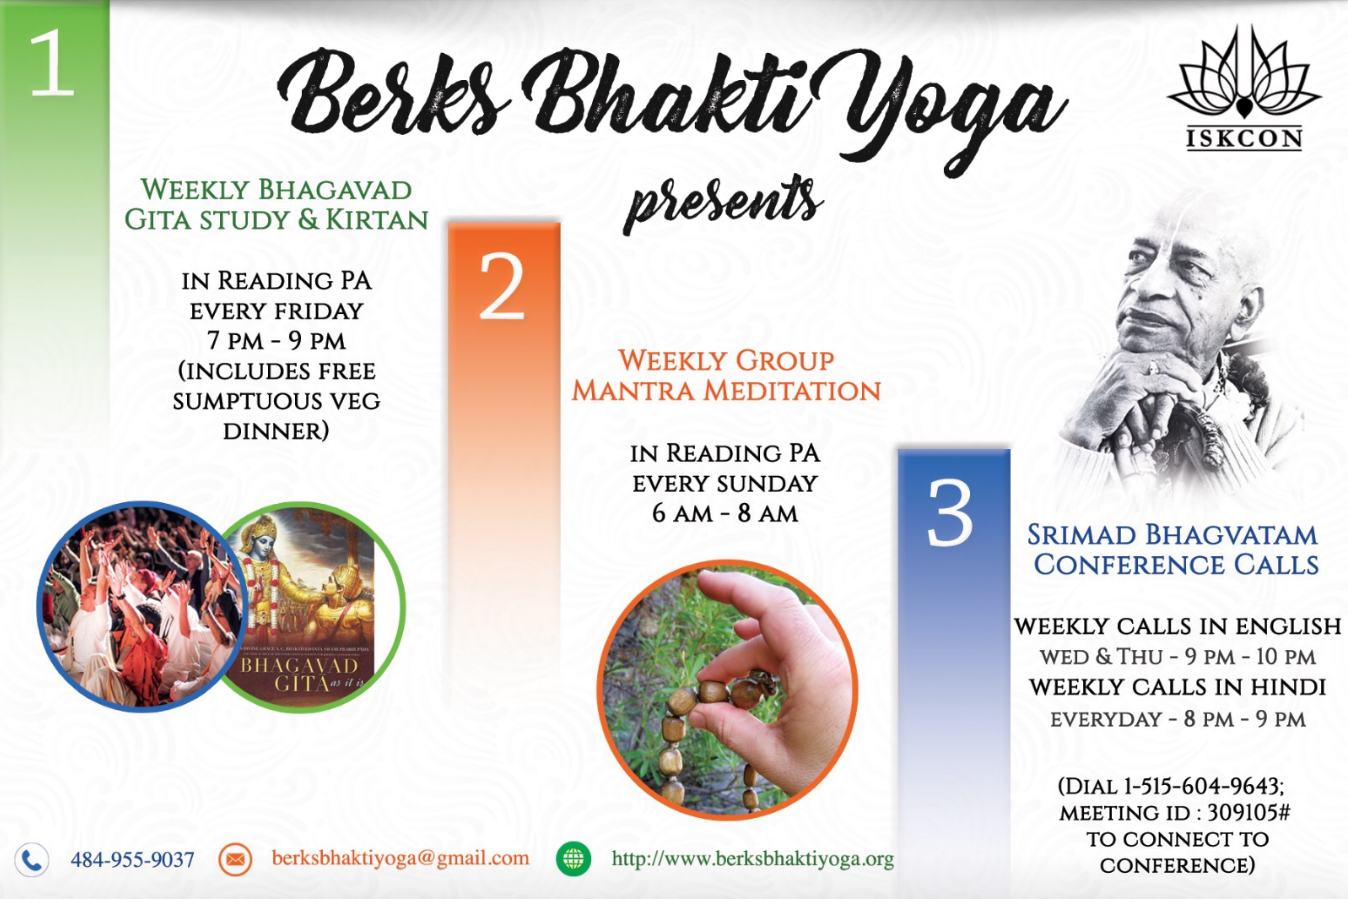 Come and Experience the Bliss and Nectar of Bhakti Yoga - Kirtan, Bhagvat Gita Study, Mantra Meditation, Prayers in Reading - Friday's @7:30pm @ Online - Please Register for Details